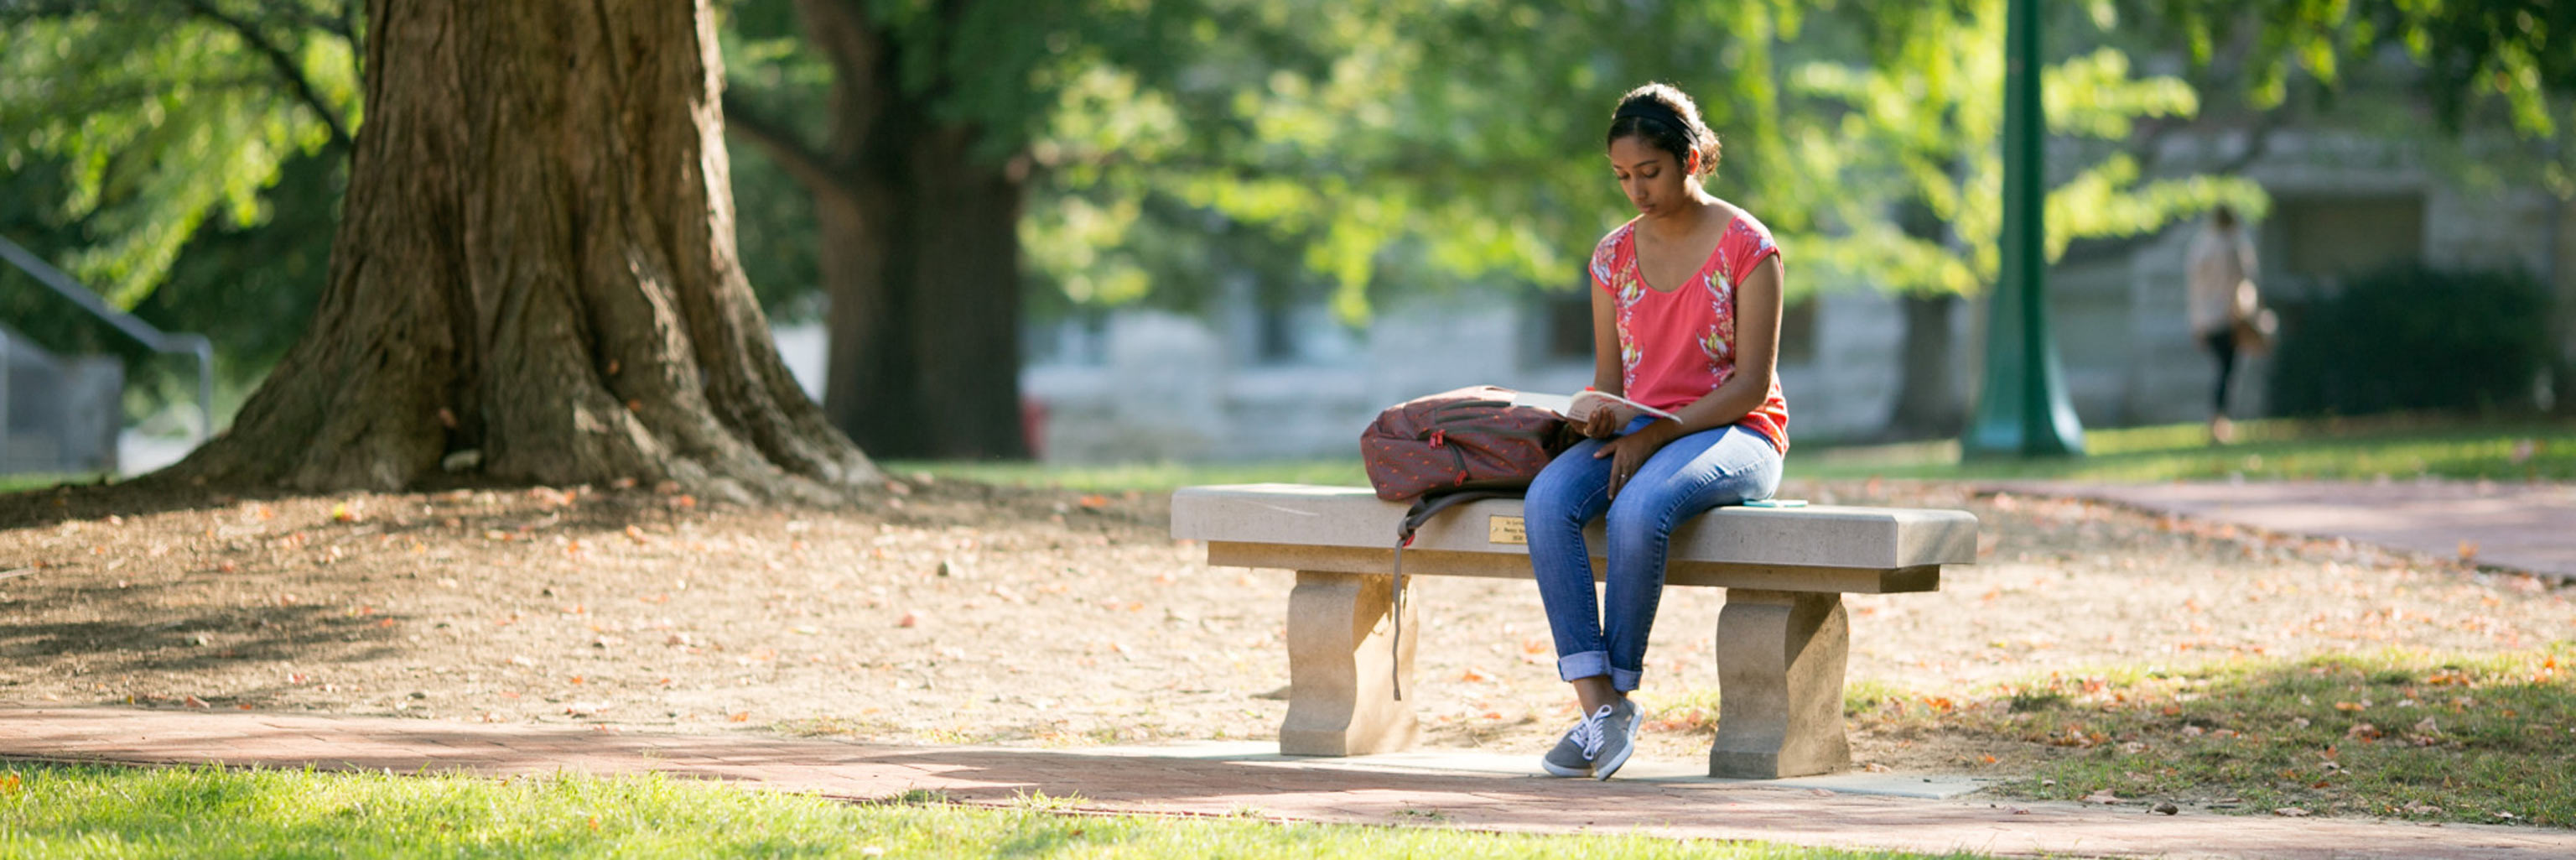 A girl sitting on a bench reading